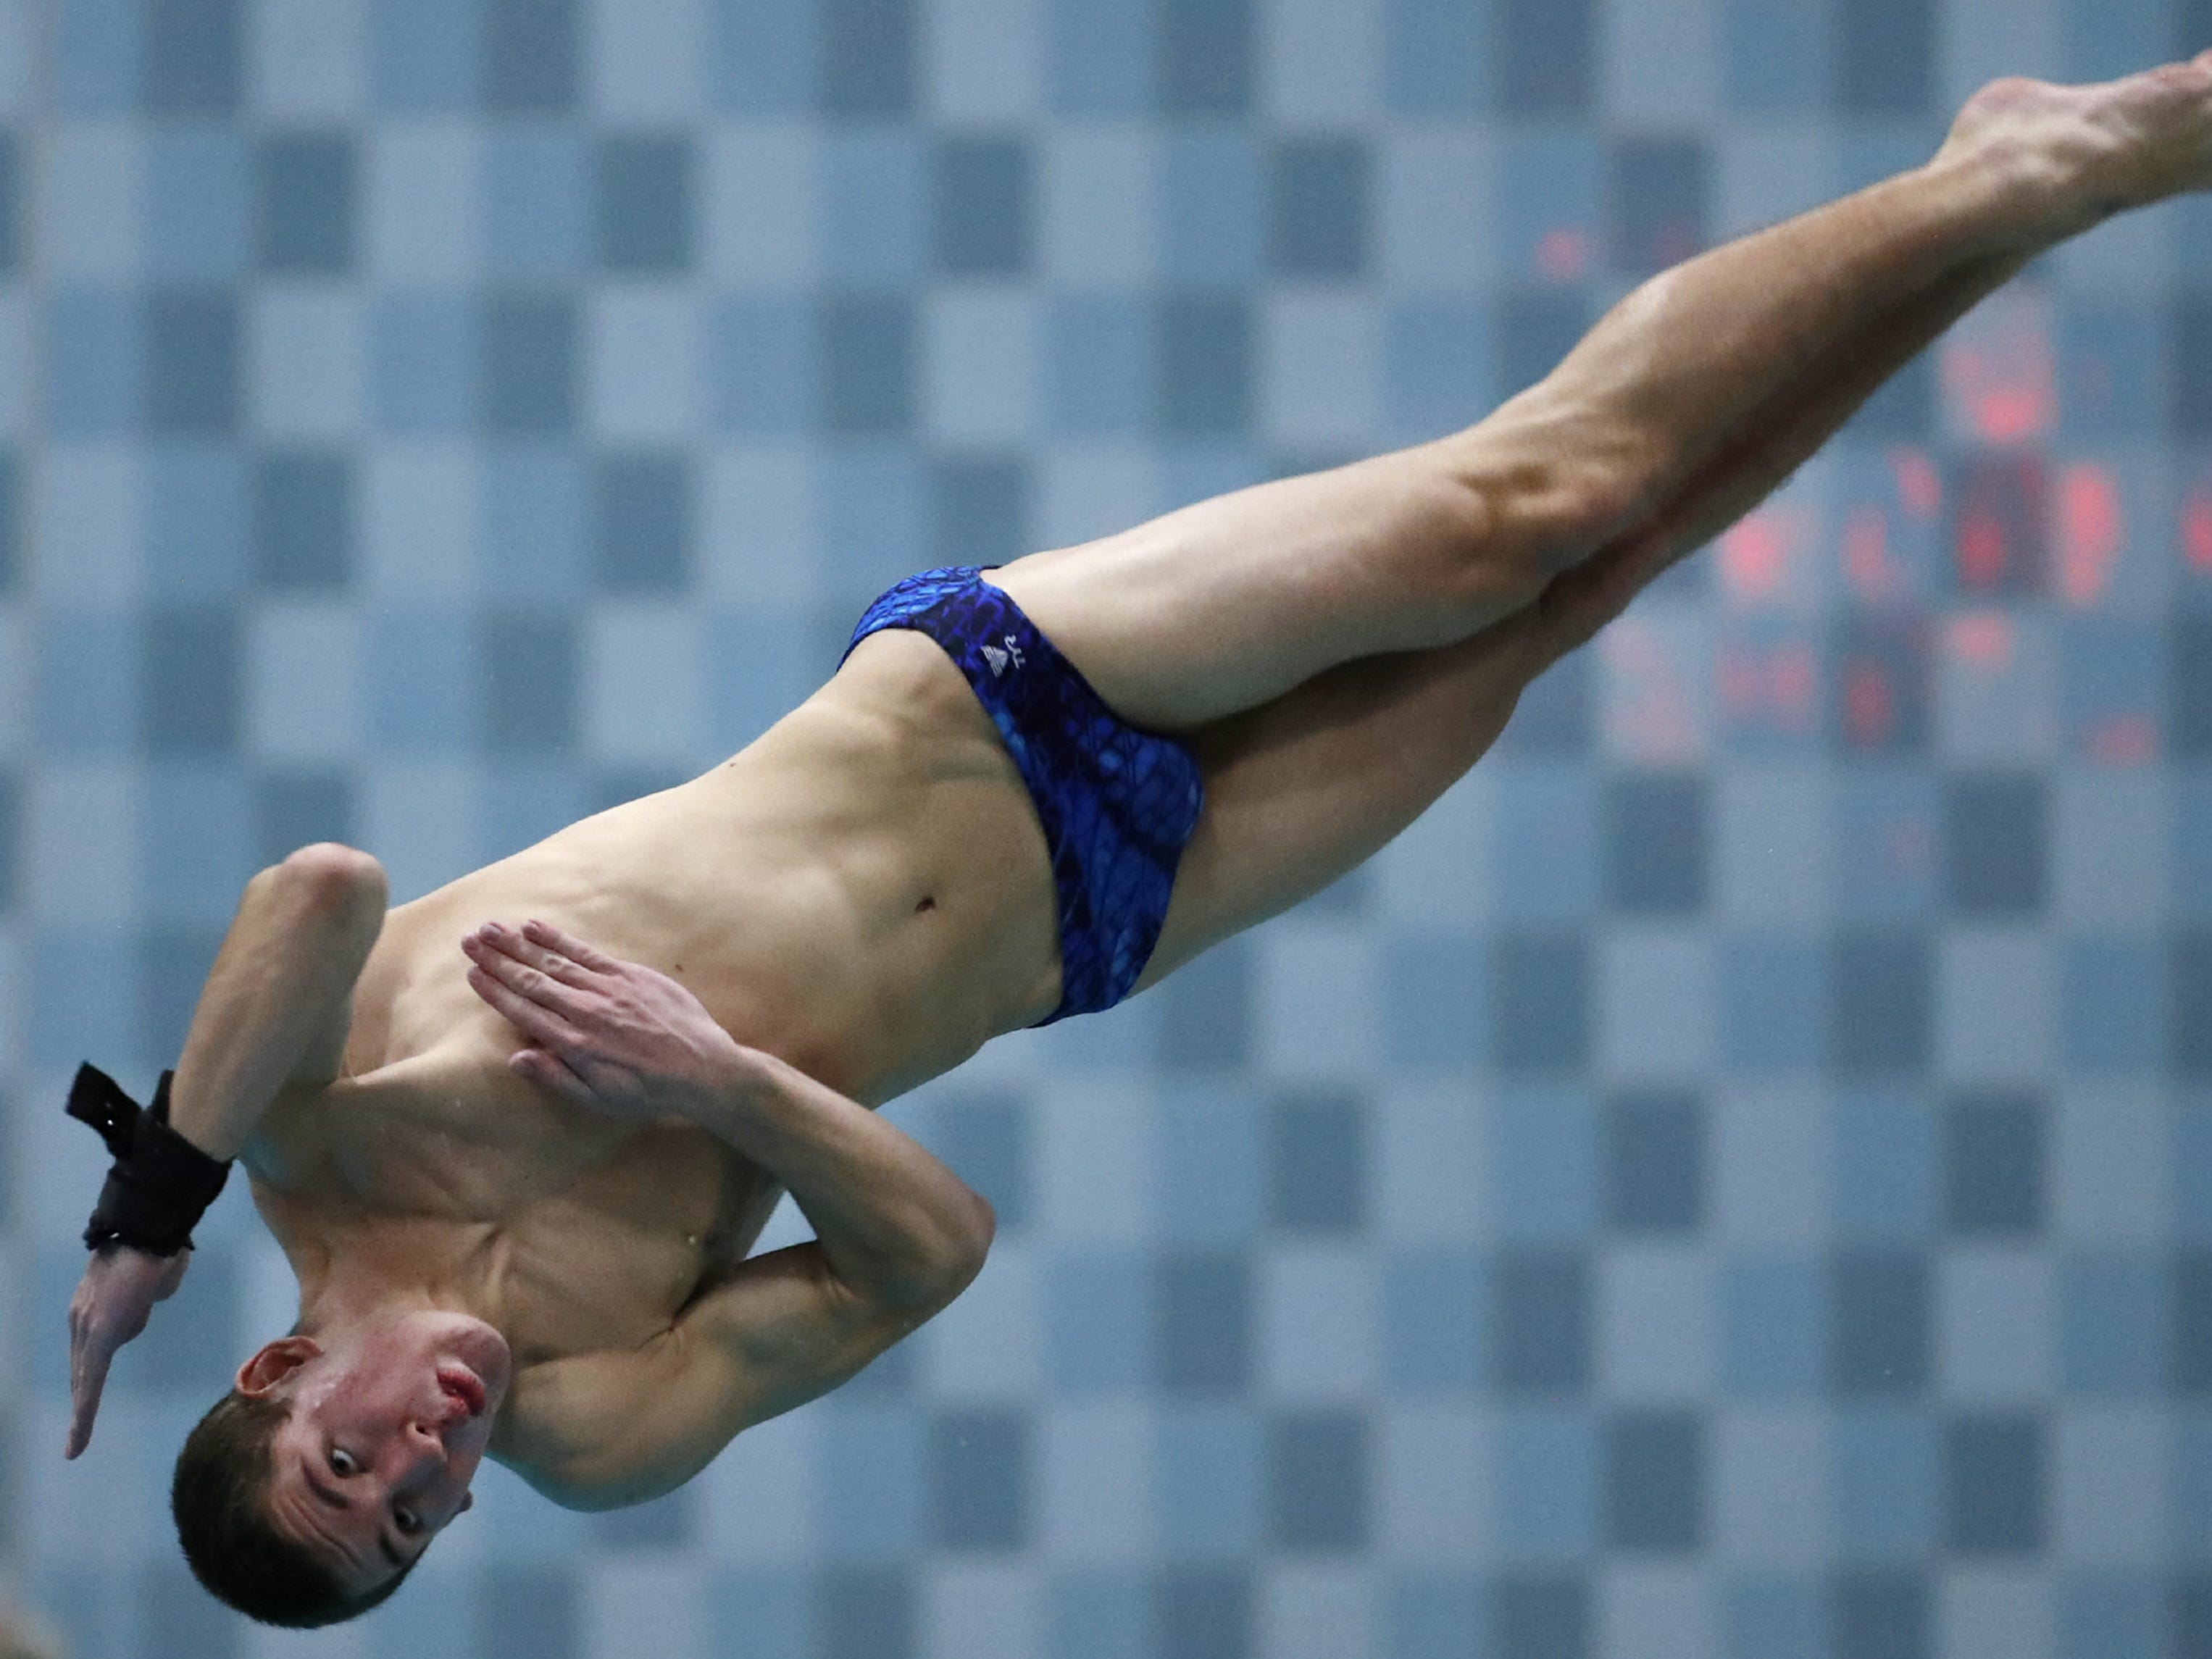 Brookfield Central/East's Braden Rumpit dives during the Division 1 2019 State Boys Swimming and Diving Championships Saturday, Feb. 16, 2019, at the UW Natatorium in Madison, Wis. Danny Damiani/USA TODAY NETWORK-Wisconsin